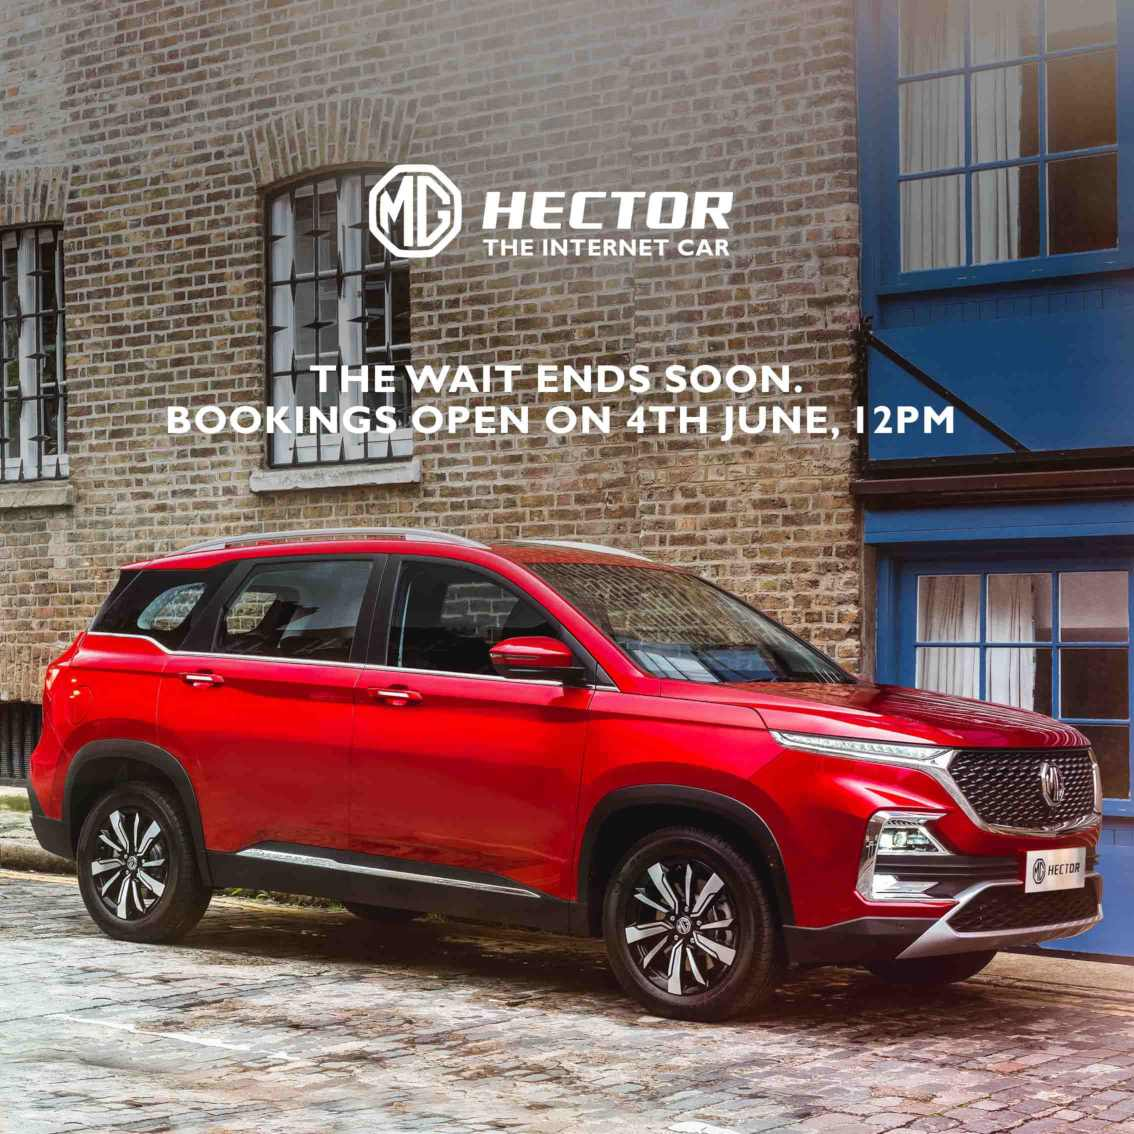 MG Hector Bookings Opens on 4 June